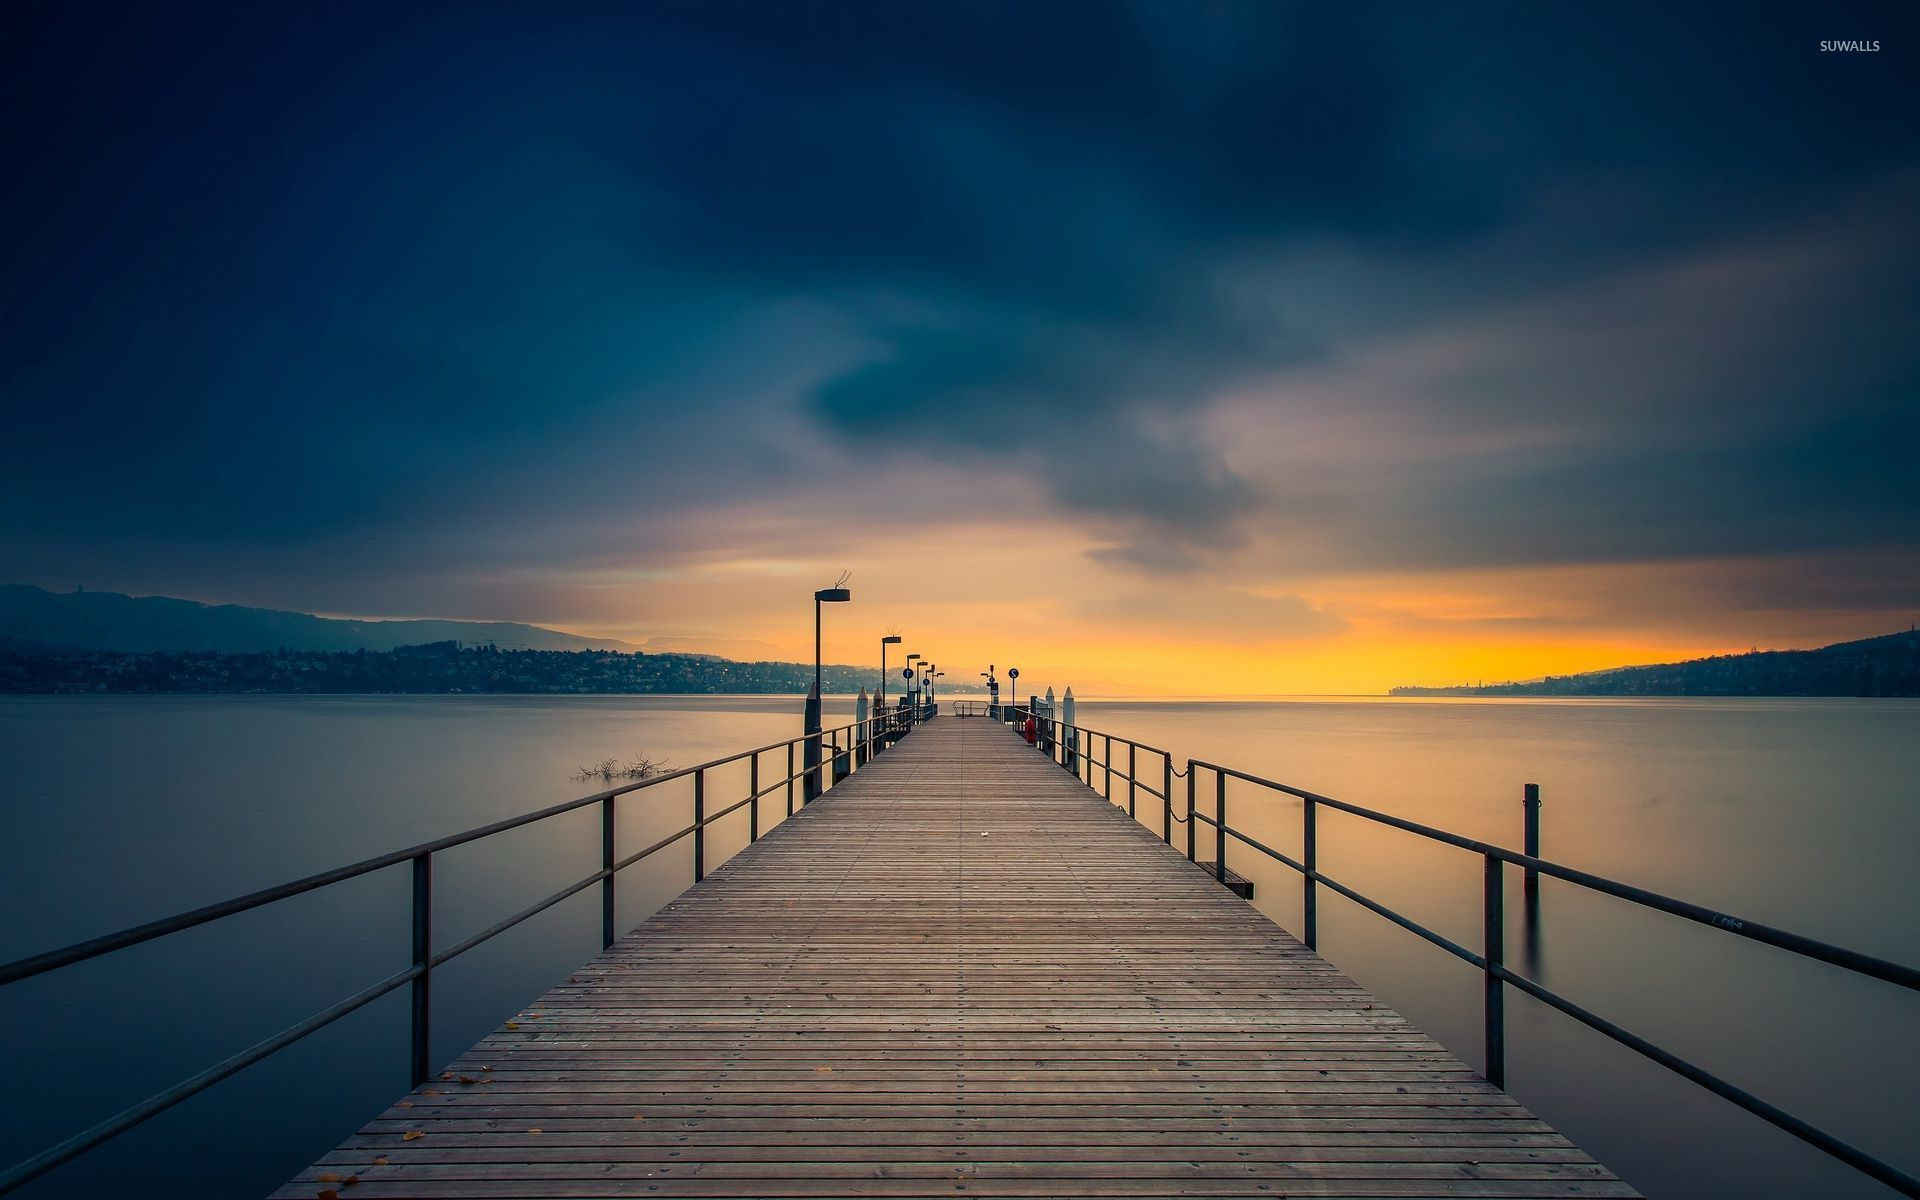 Wooden Pier Towards The Golden Sunset Wallpaper